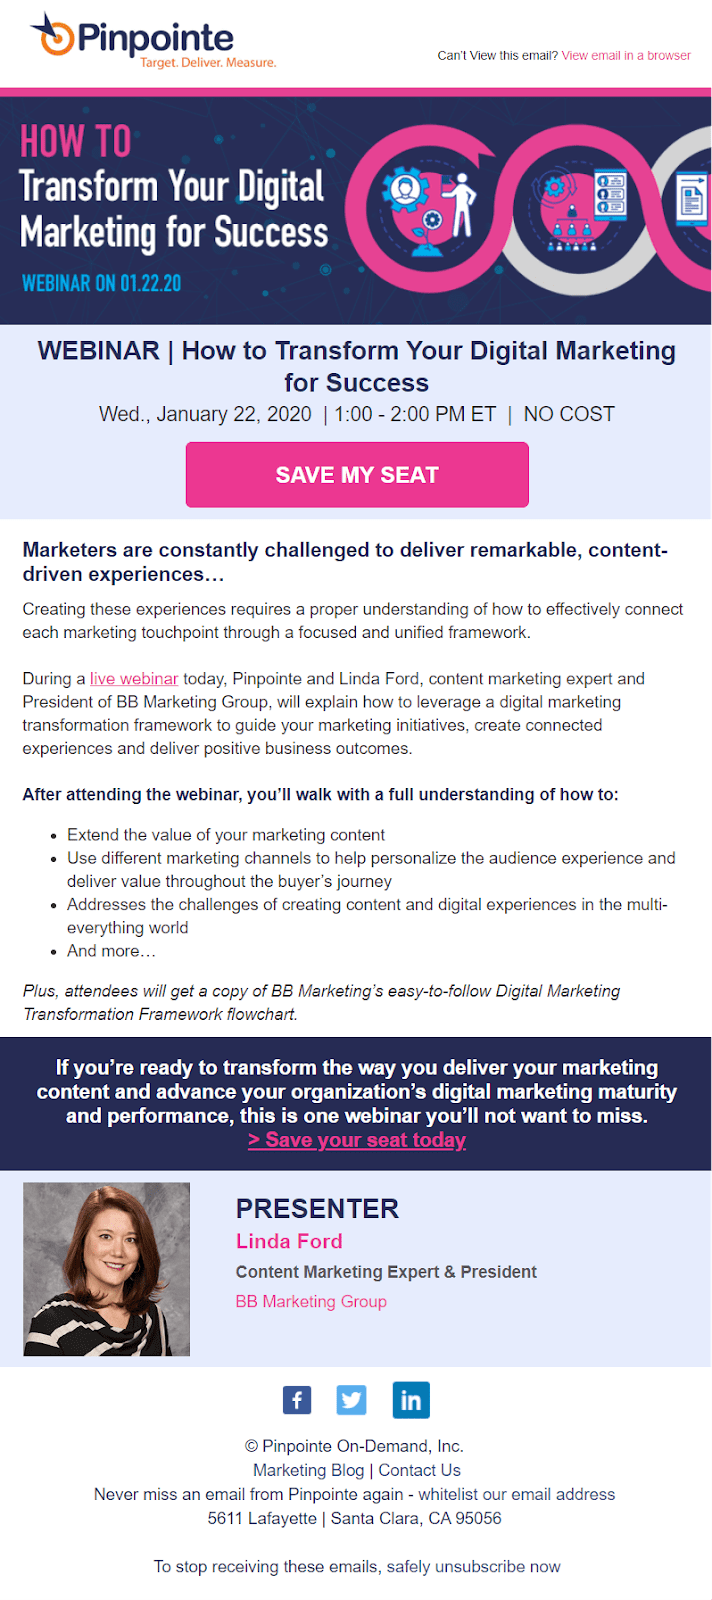 A webinar invitation email sent by PinPointe